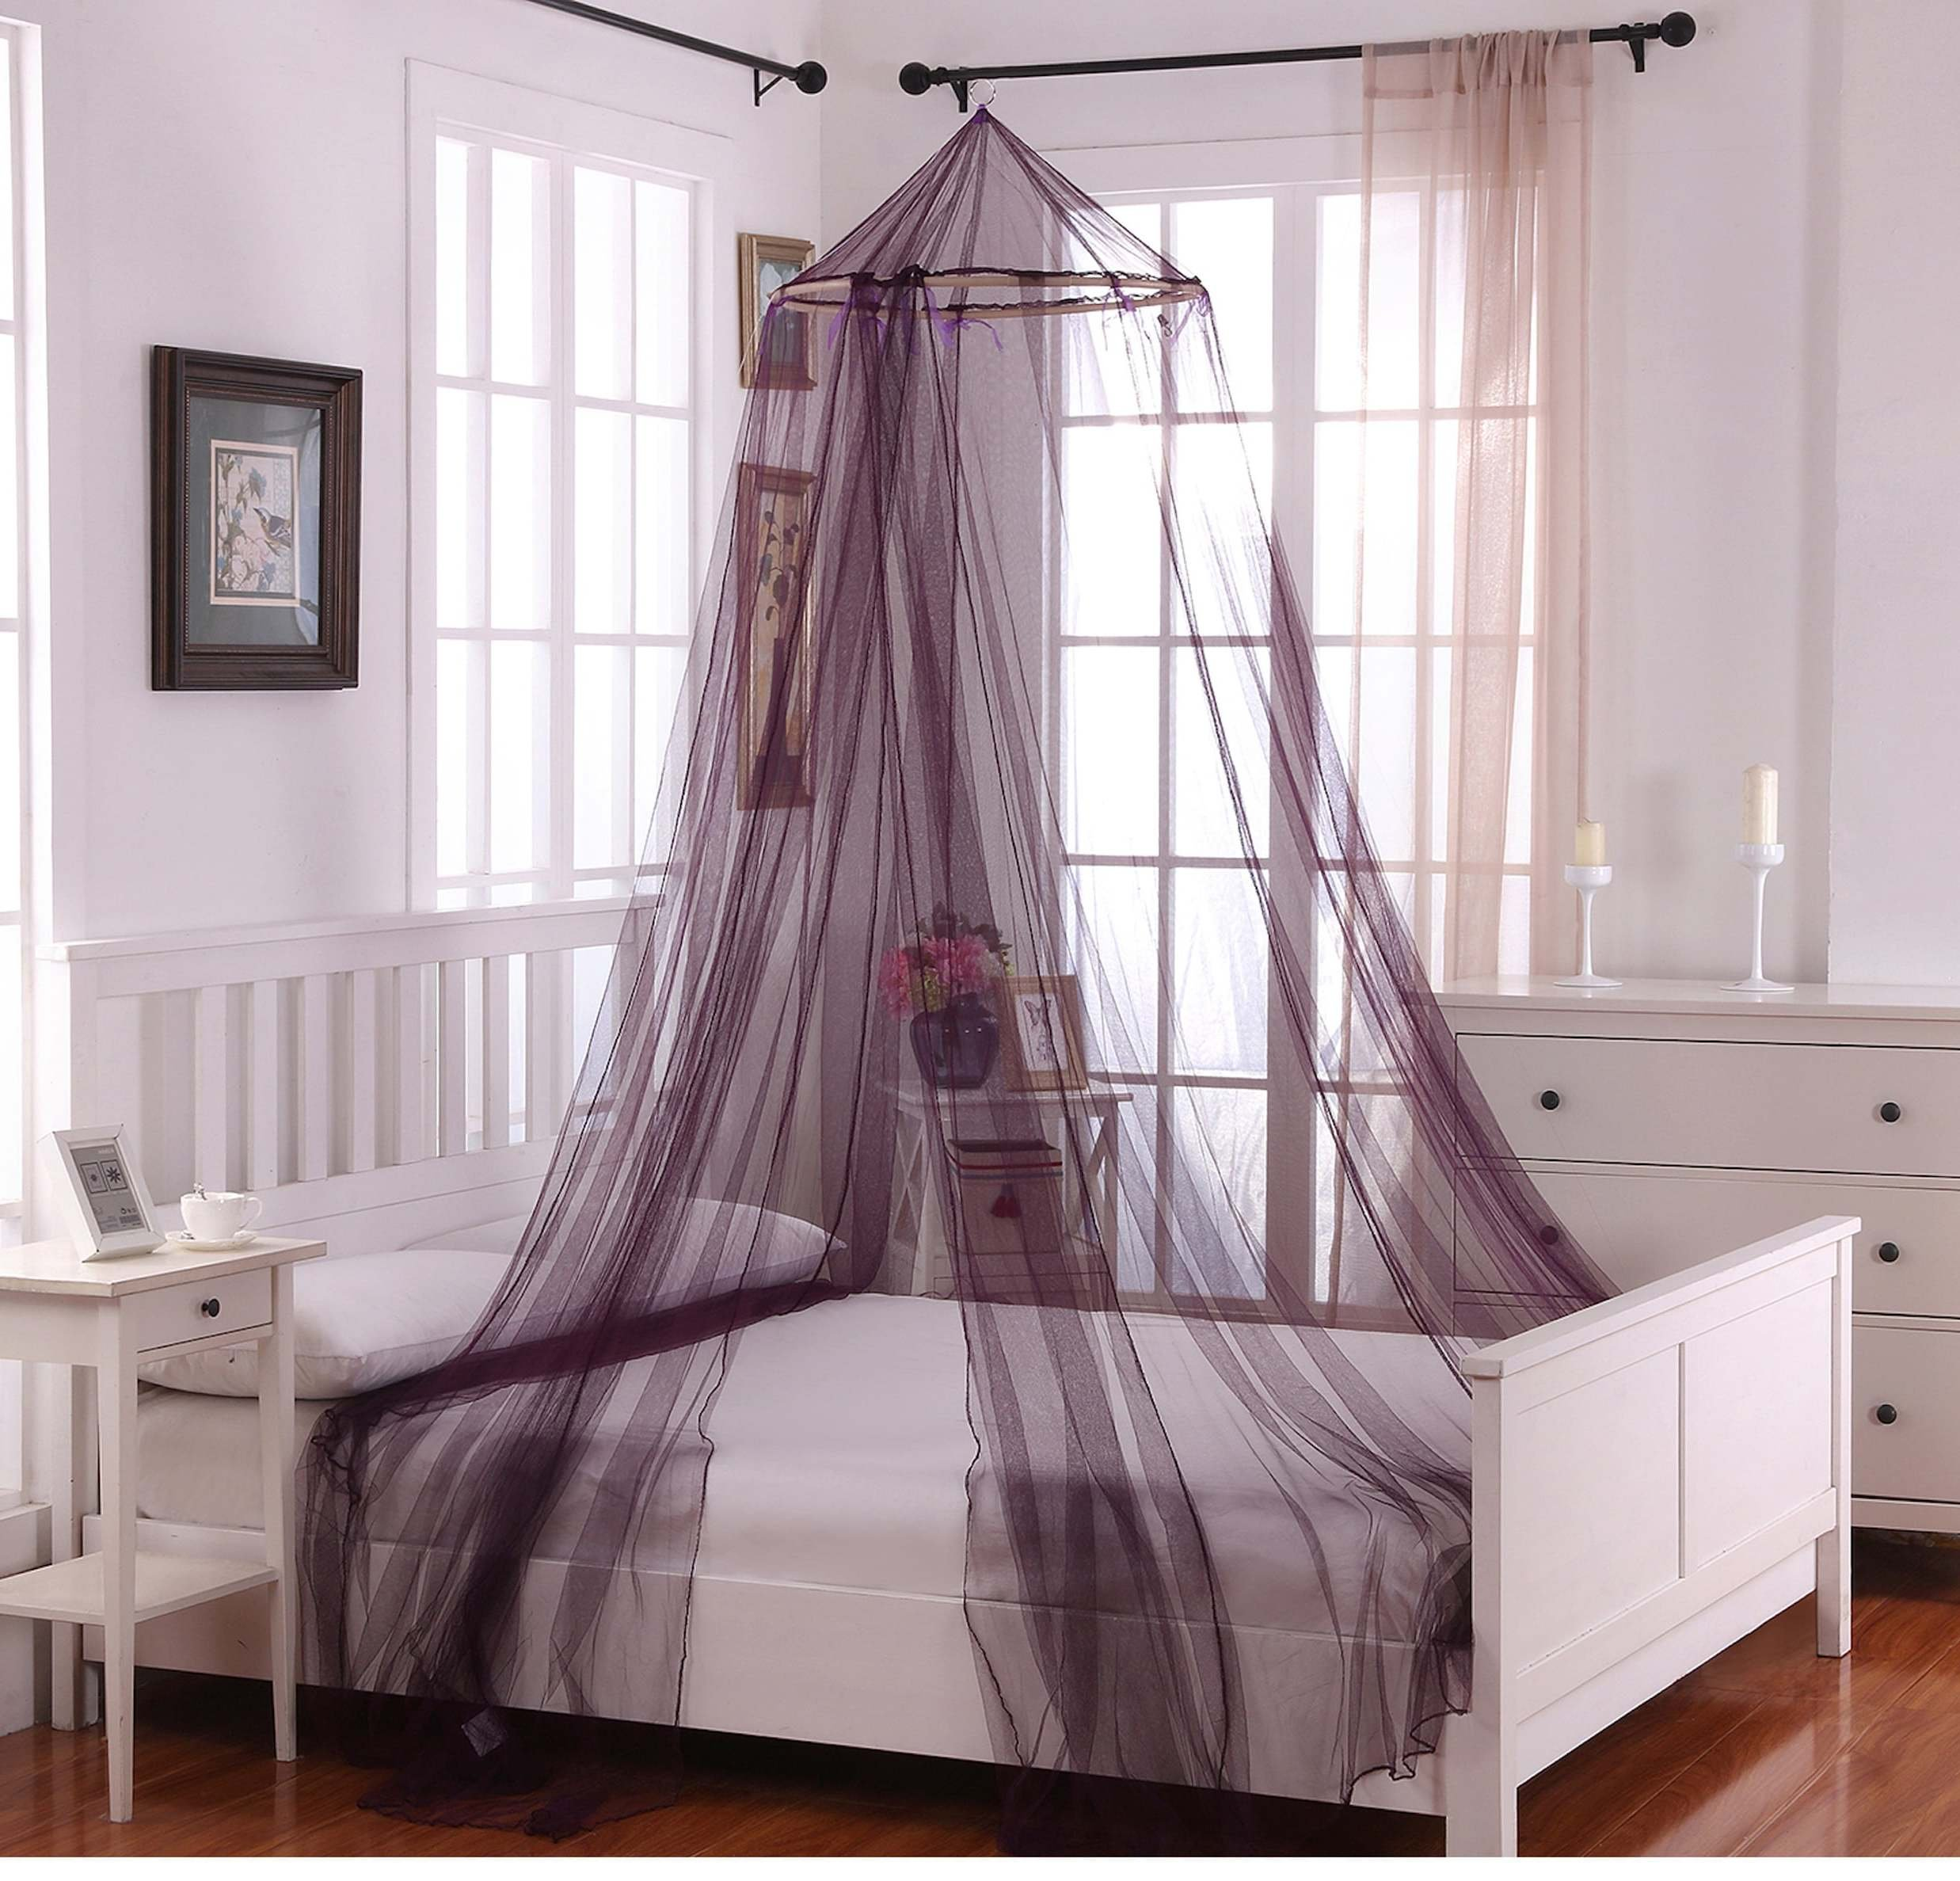 1 Piece Purple Round Hoop Bed Canopy, Mosquito Netting Themed Calm Whimsical, Elegant Fantasy Whimsical Stylish Fun Cute Stylish Draping Relaxing, Polyester, Wood